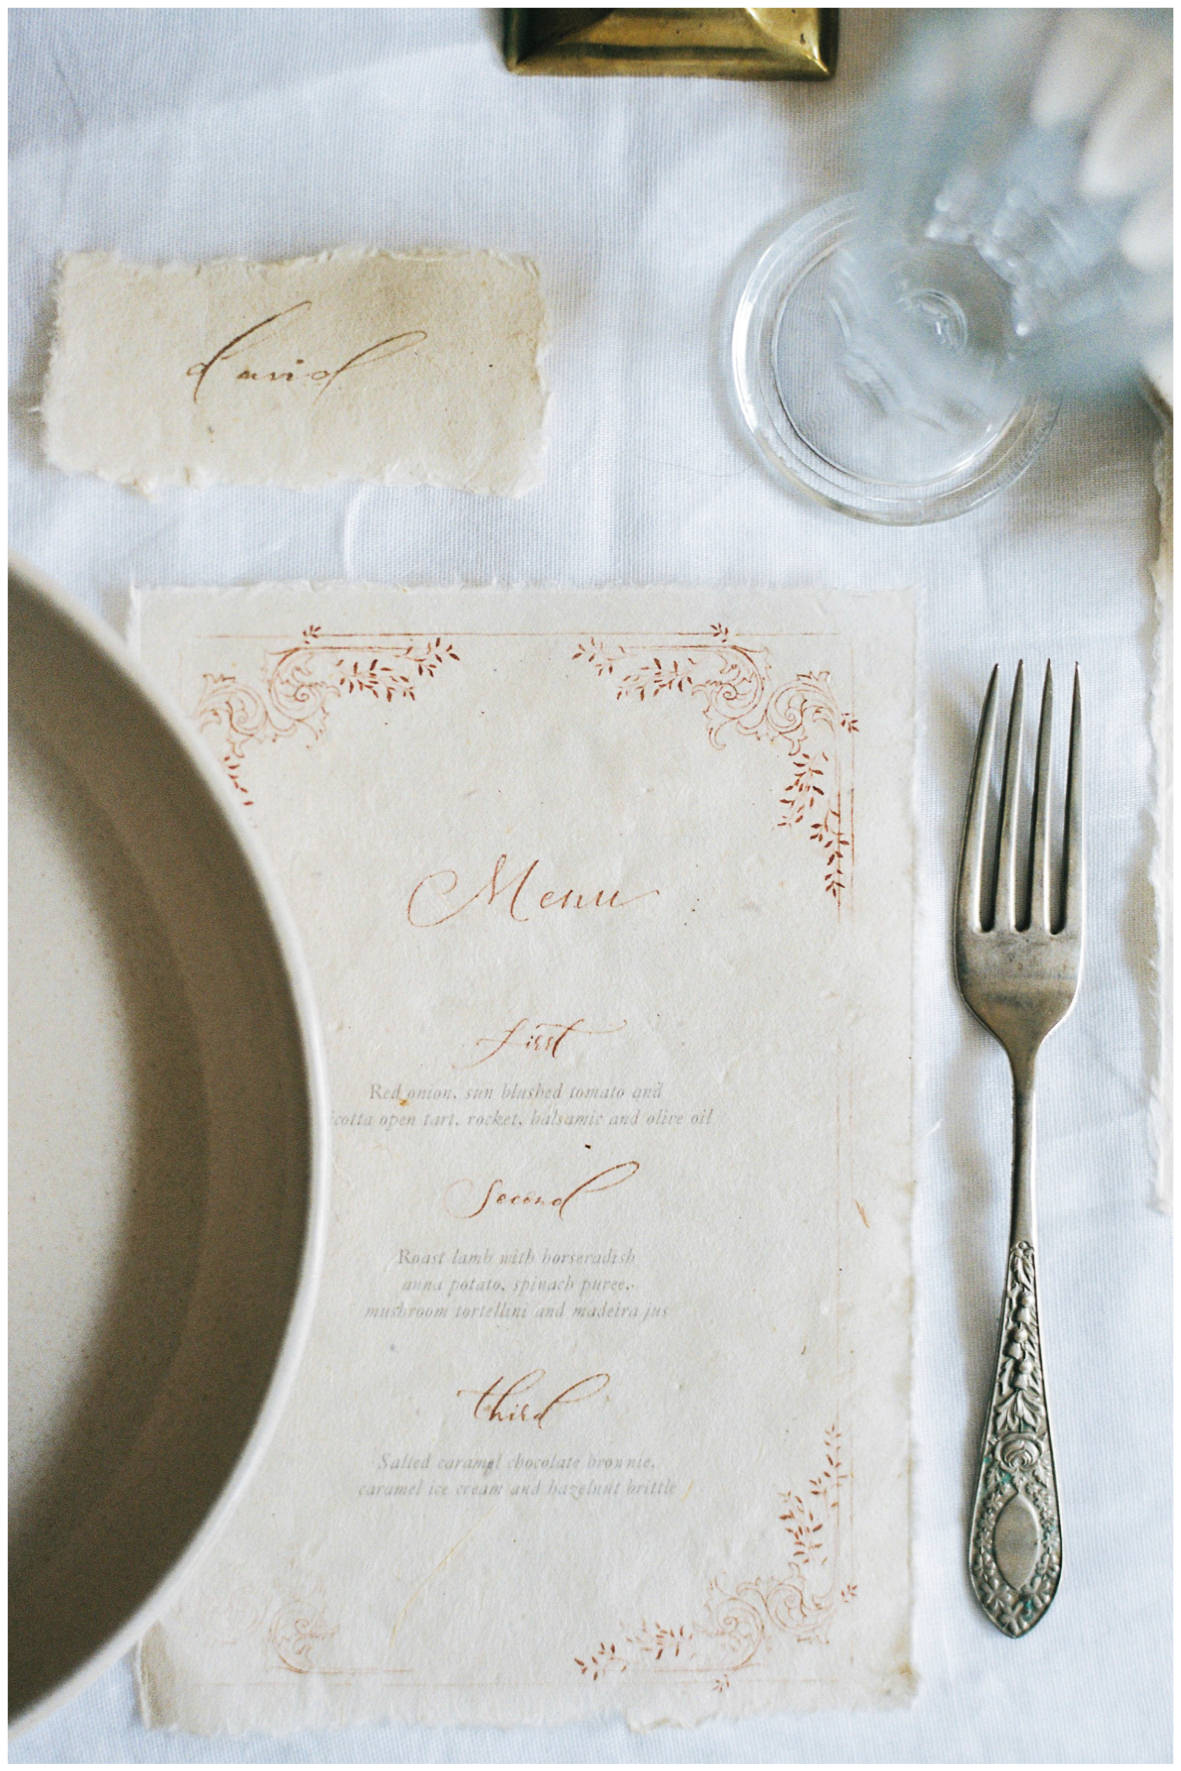 Lucy Davenport Photography, Once Wed, Home Creations, The Wedding Stylist, Verity & Thyme, tablescape, intimate dinner, wedding breakfast, calligraphy, wedding stationery, menu, place name